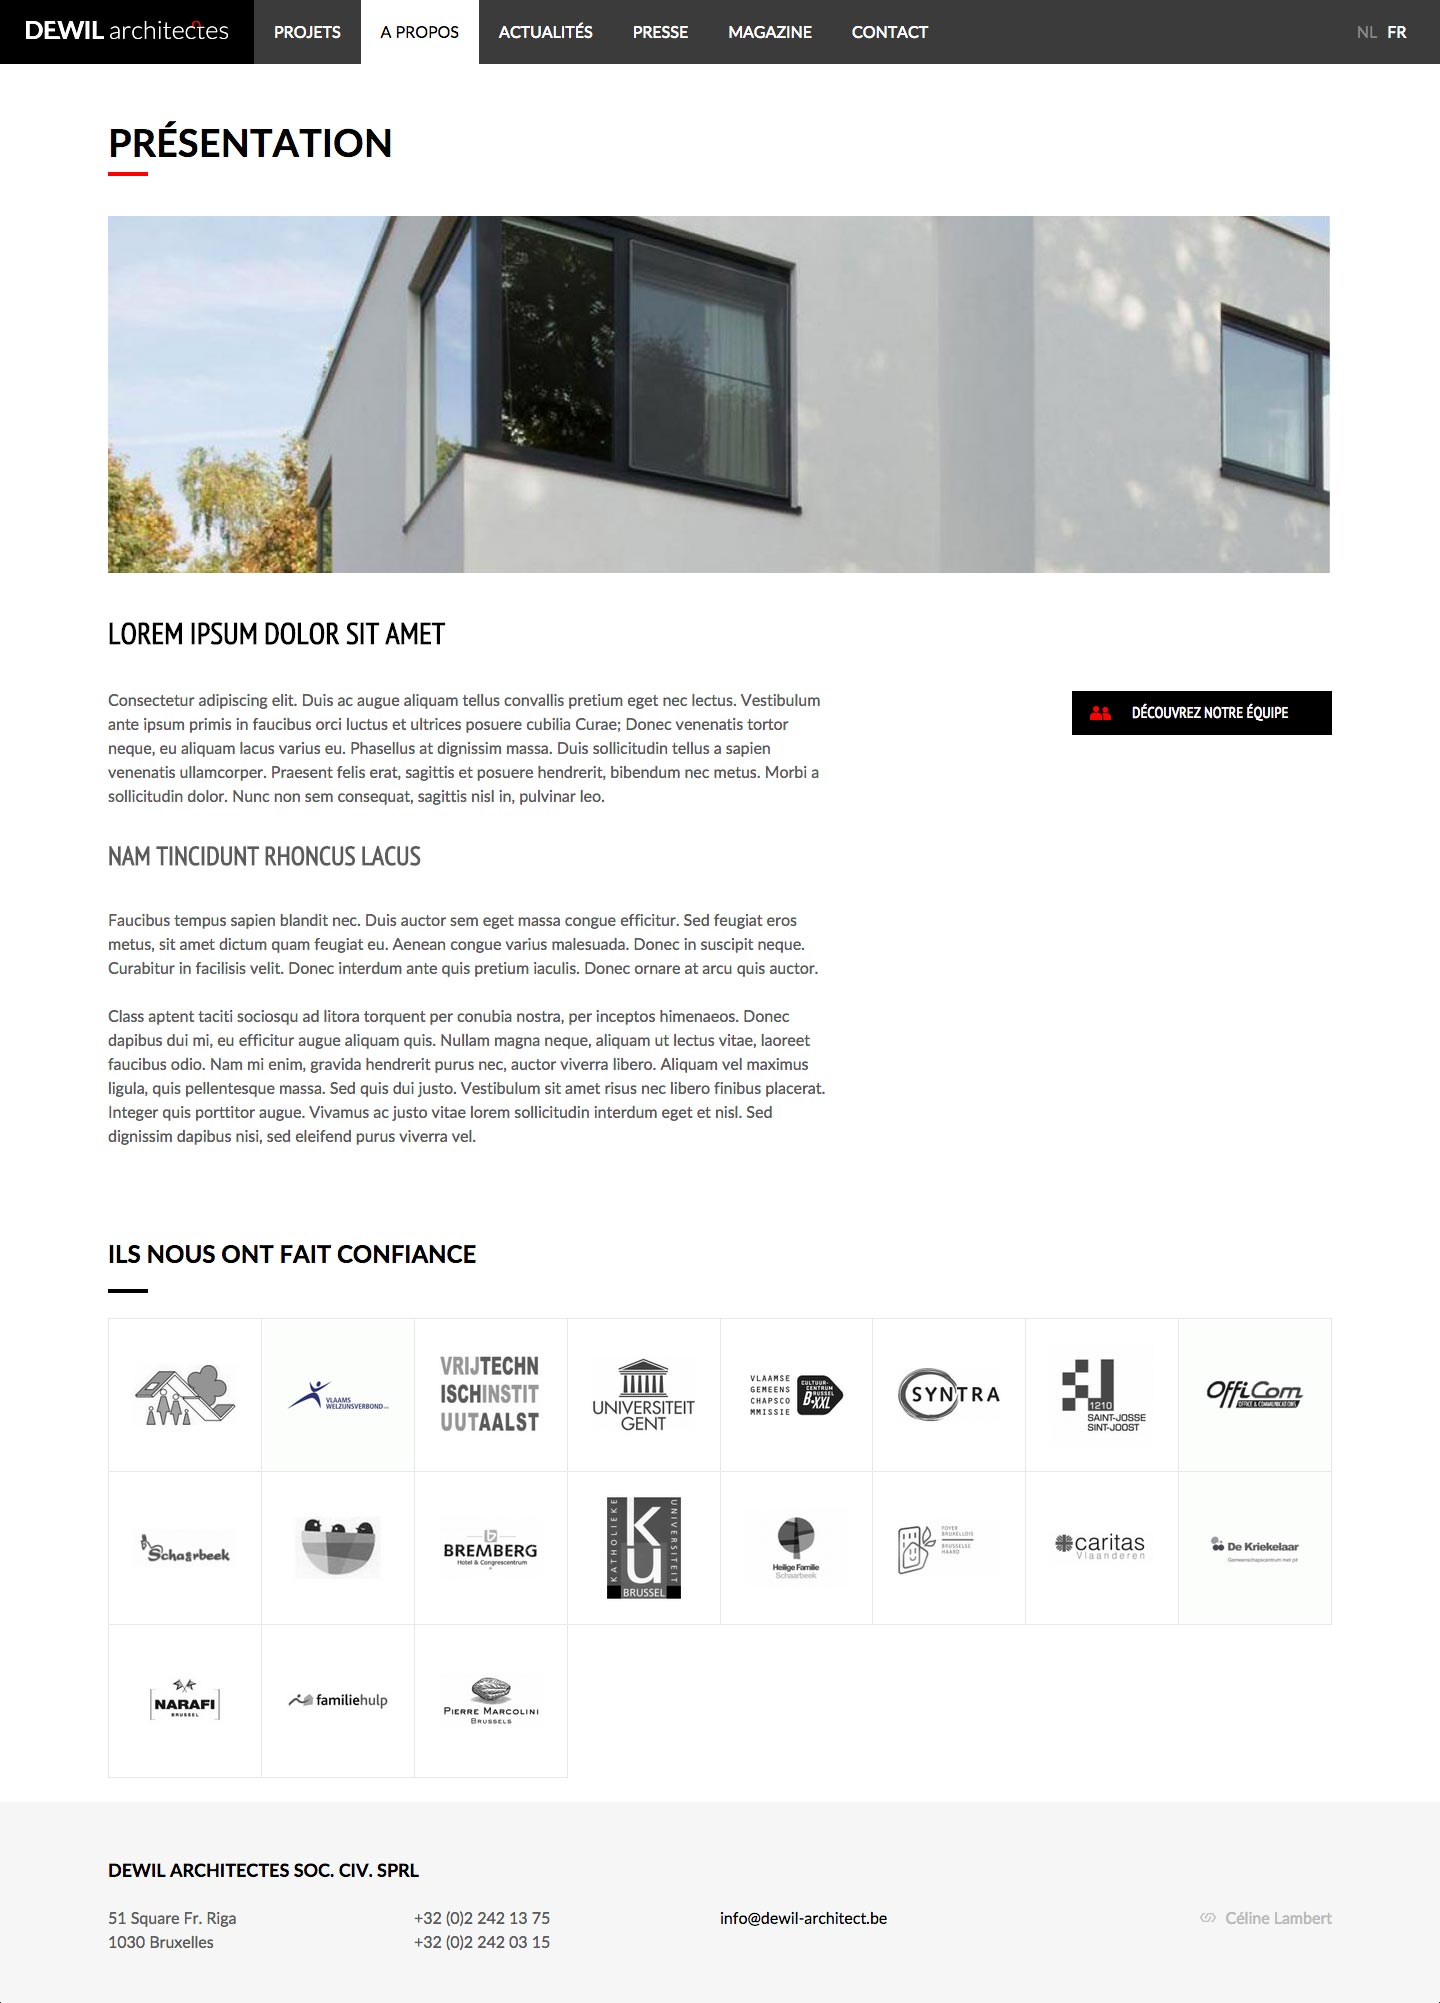 Dewil Architect - Page A propos